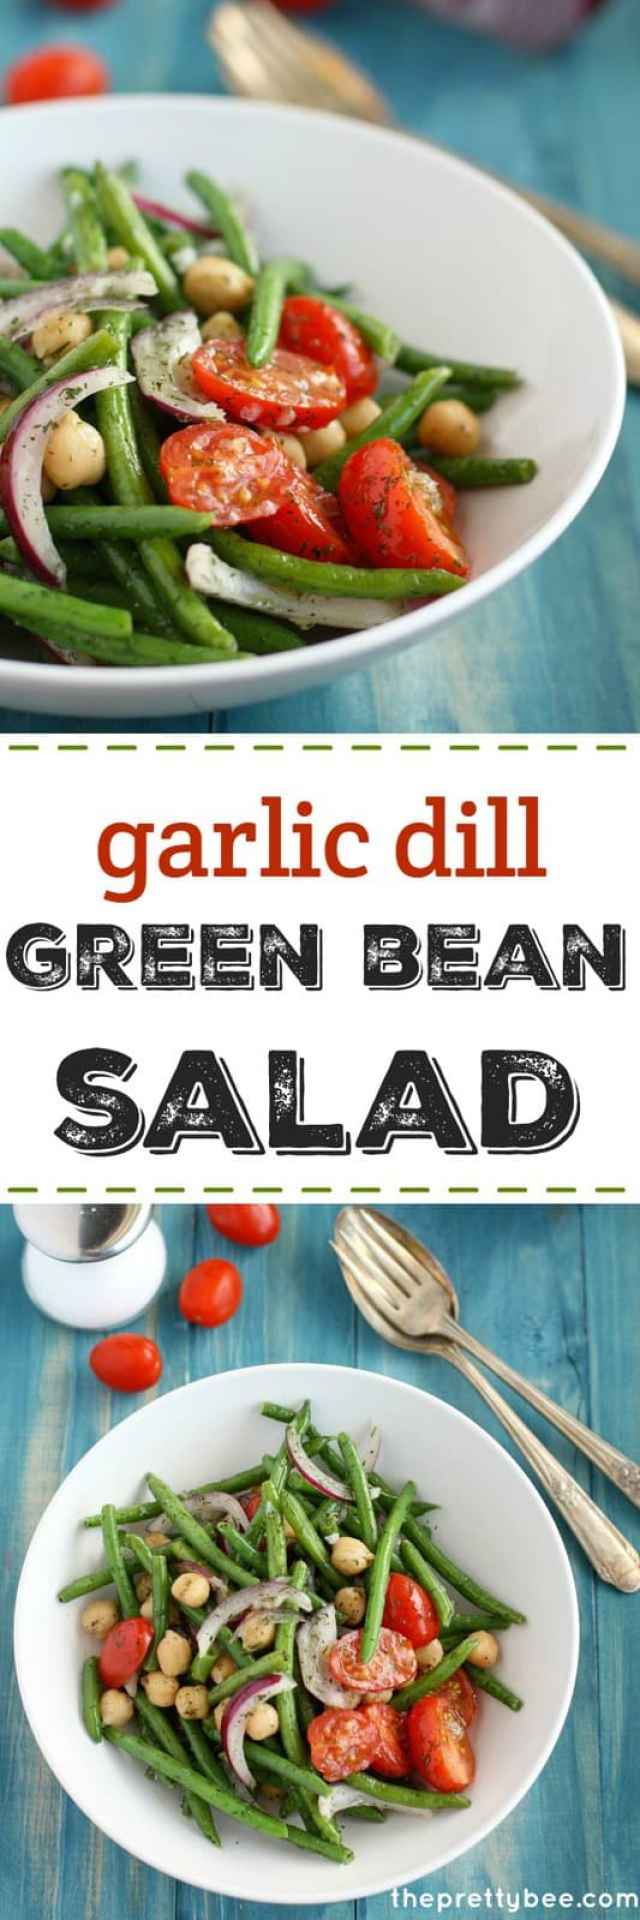 Garlic dill green bean salad is a delicious summer dish! Full of flavor and color!